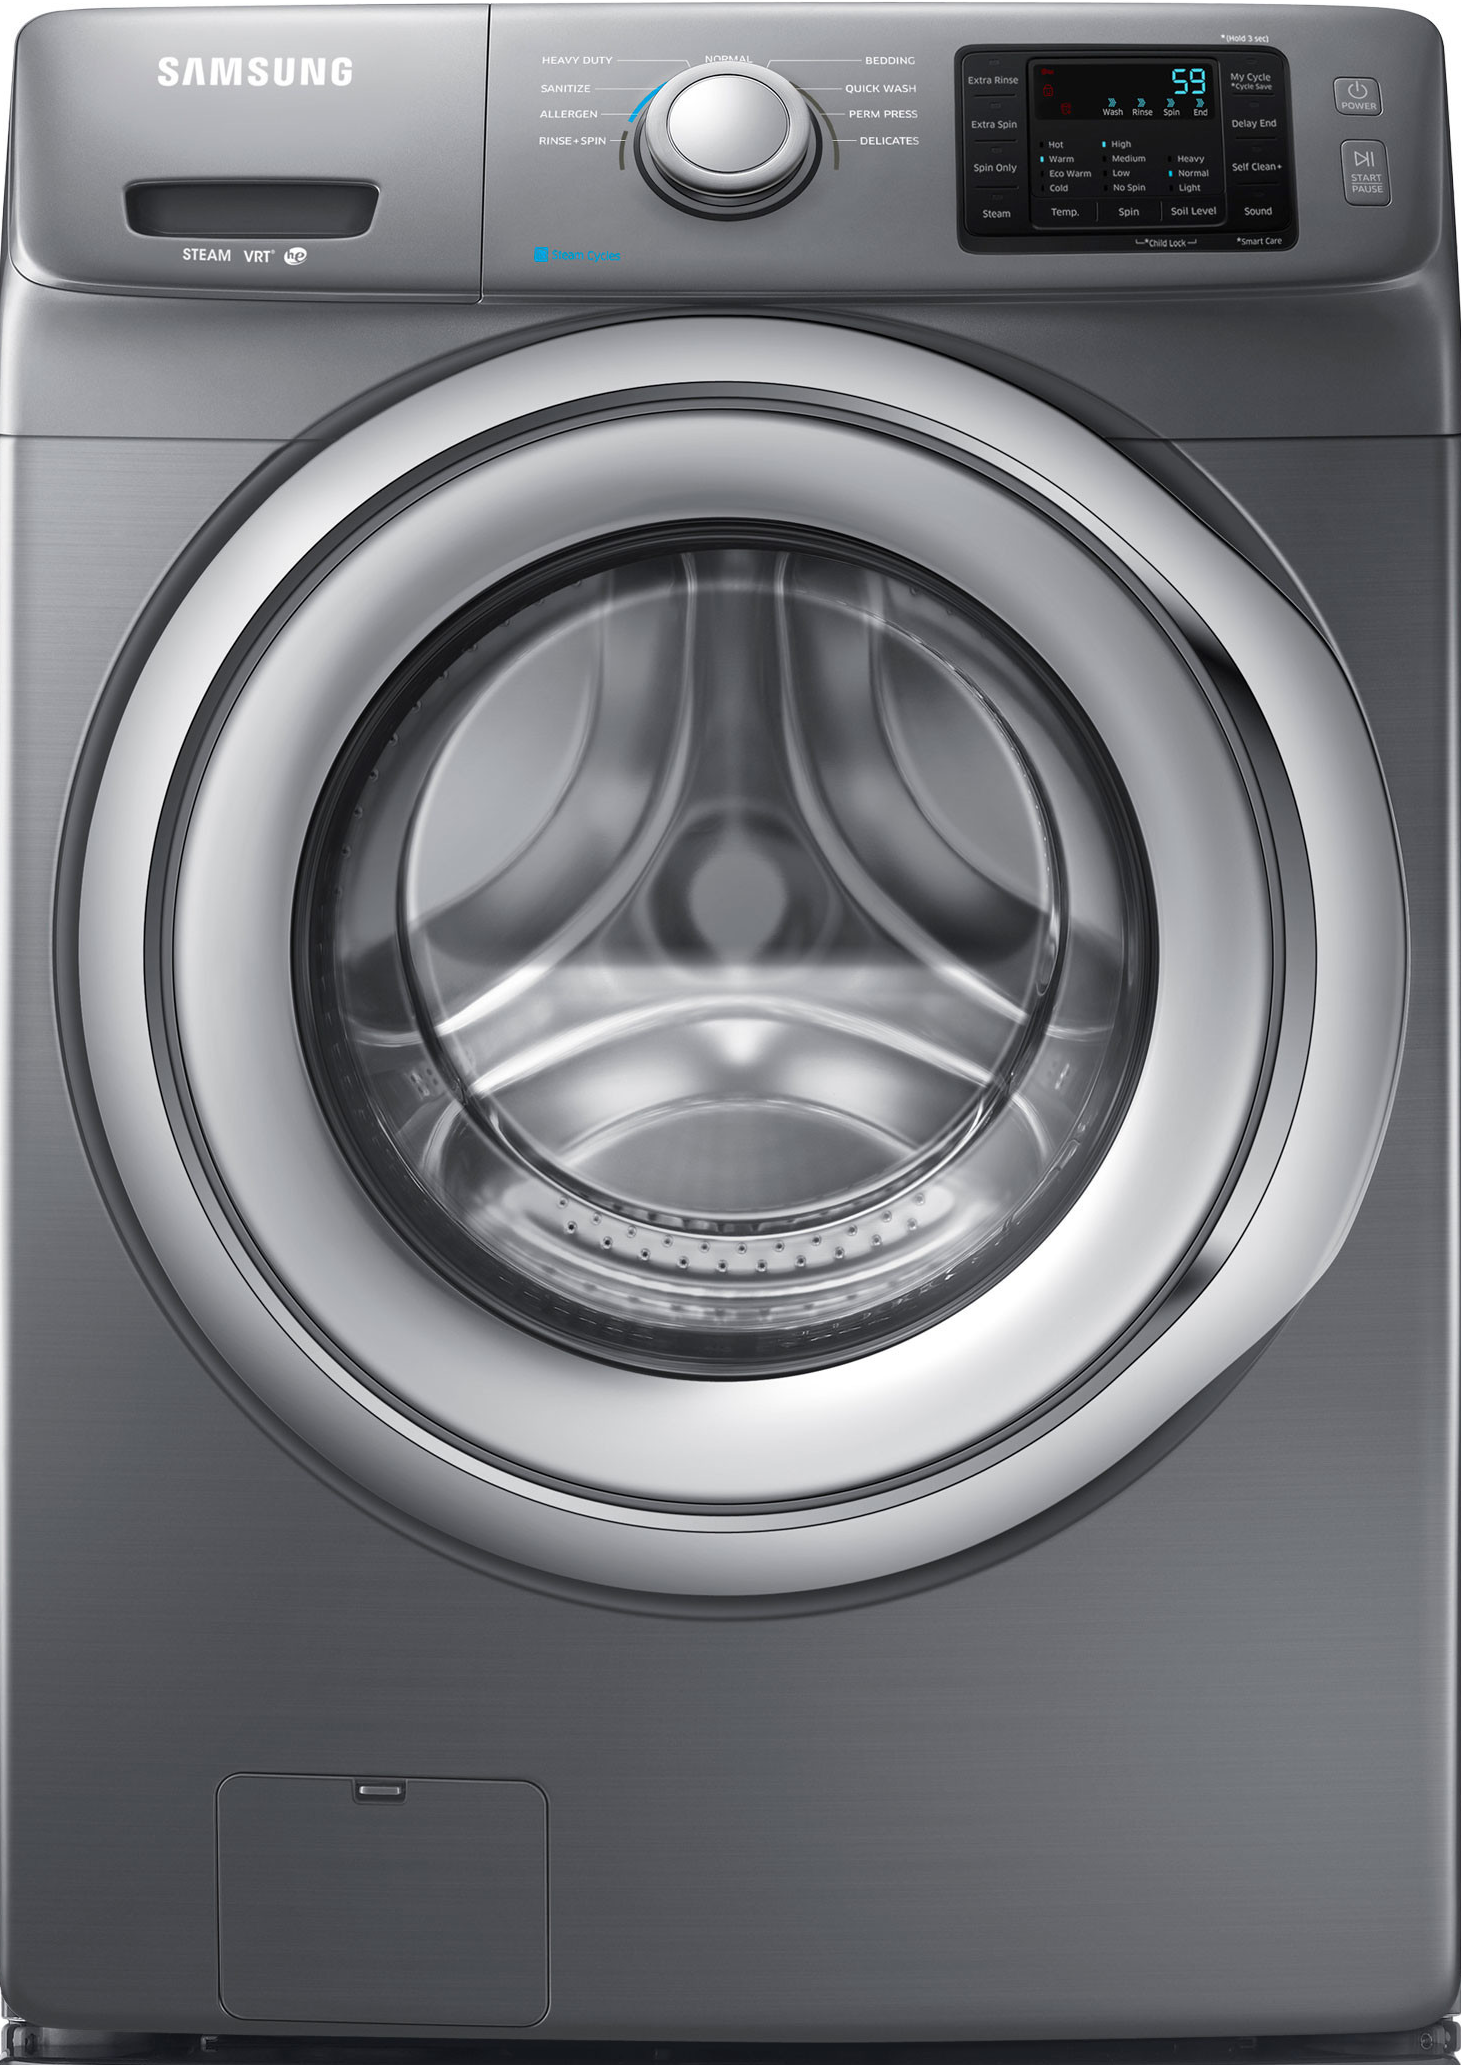 Samsung Wf42h5200ap 27 Inch 42 Cu Ft Front Load Washer With Steam